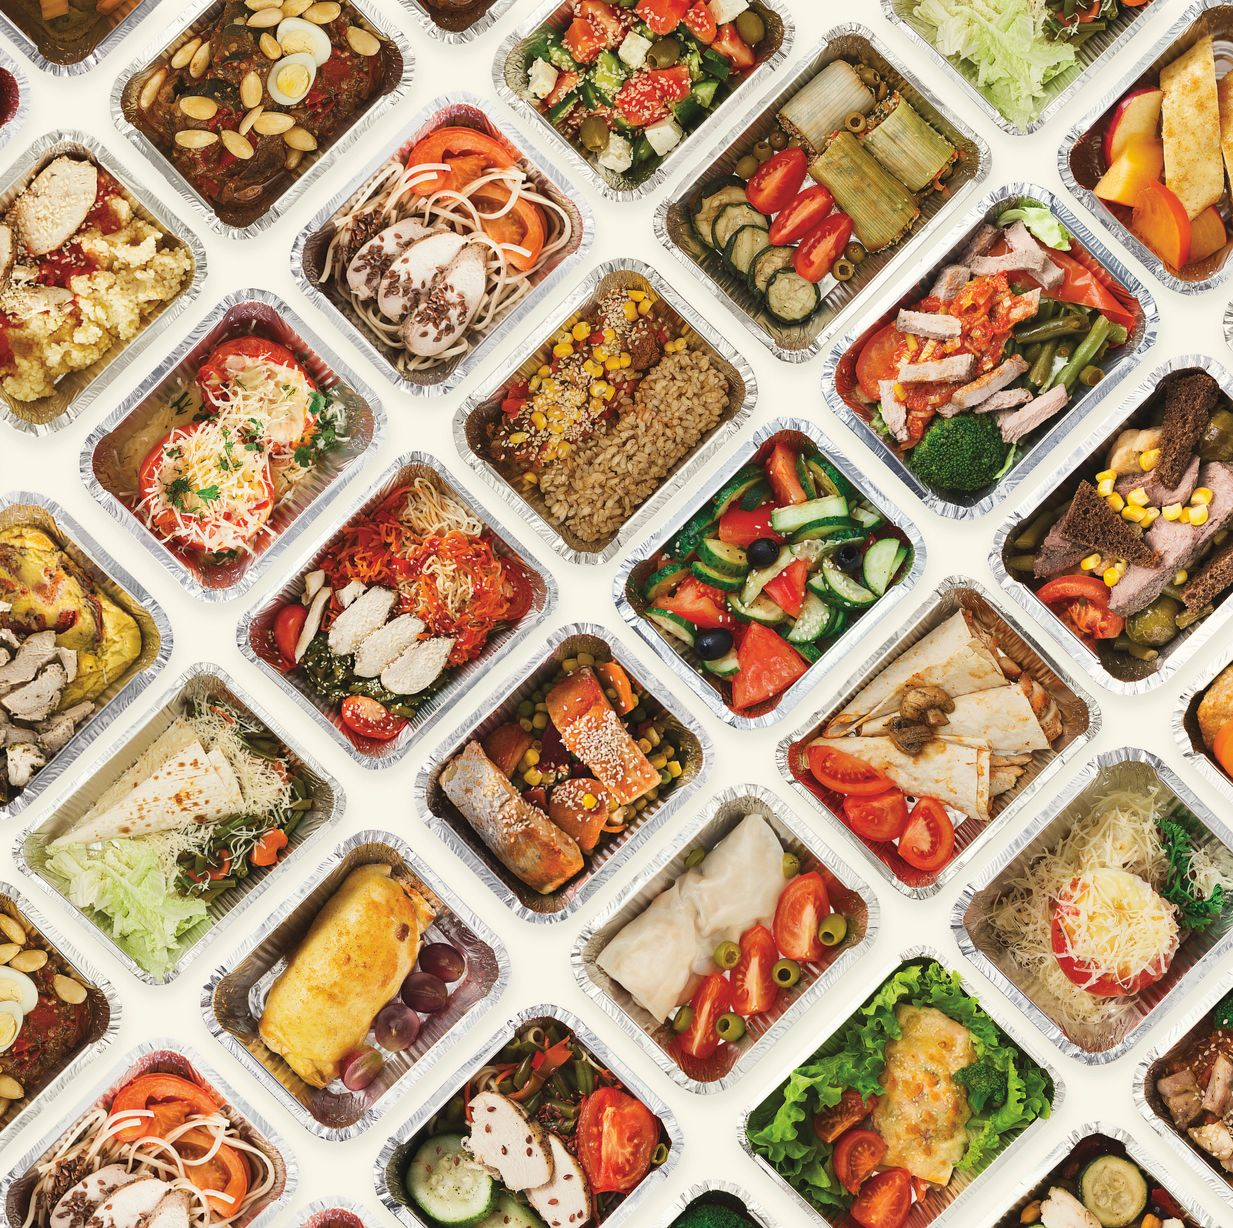 The Ultimate Guide for Easy Meal Prepping